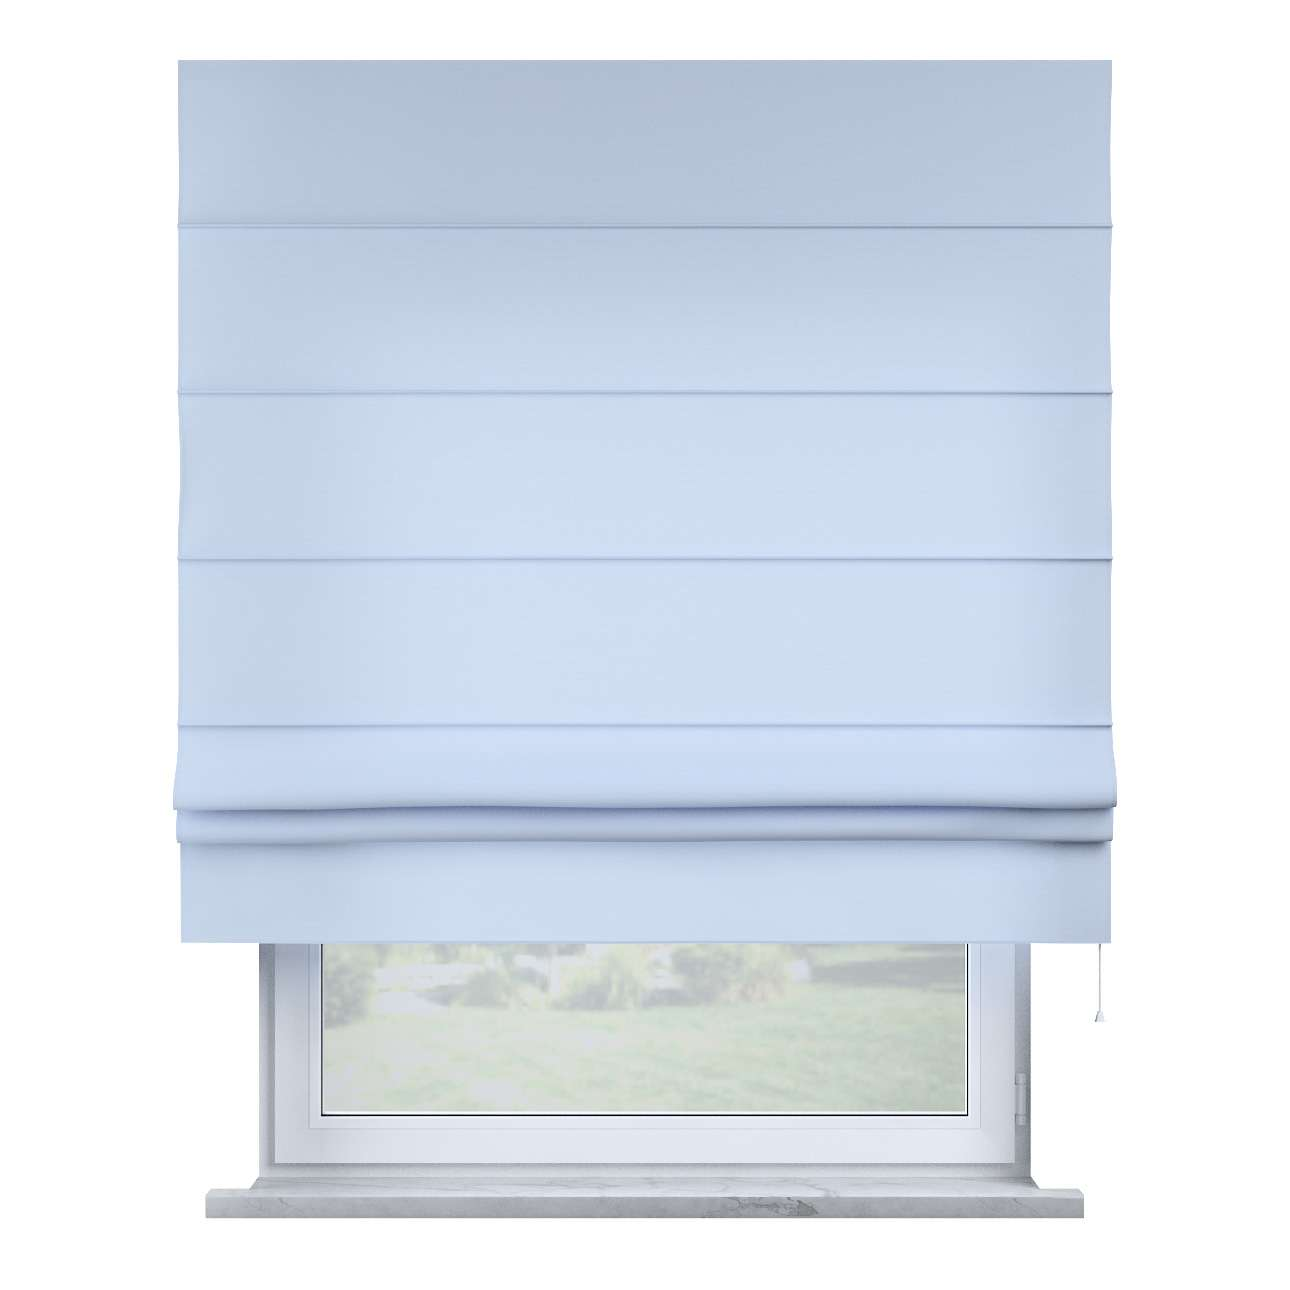 Sammy roman blind in collection Happiness, fabric: 133-35